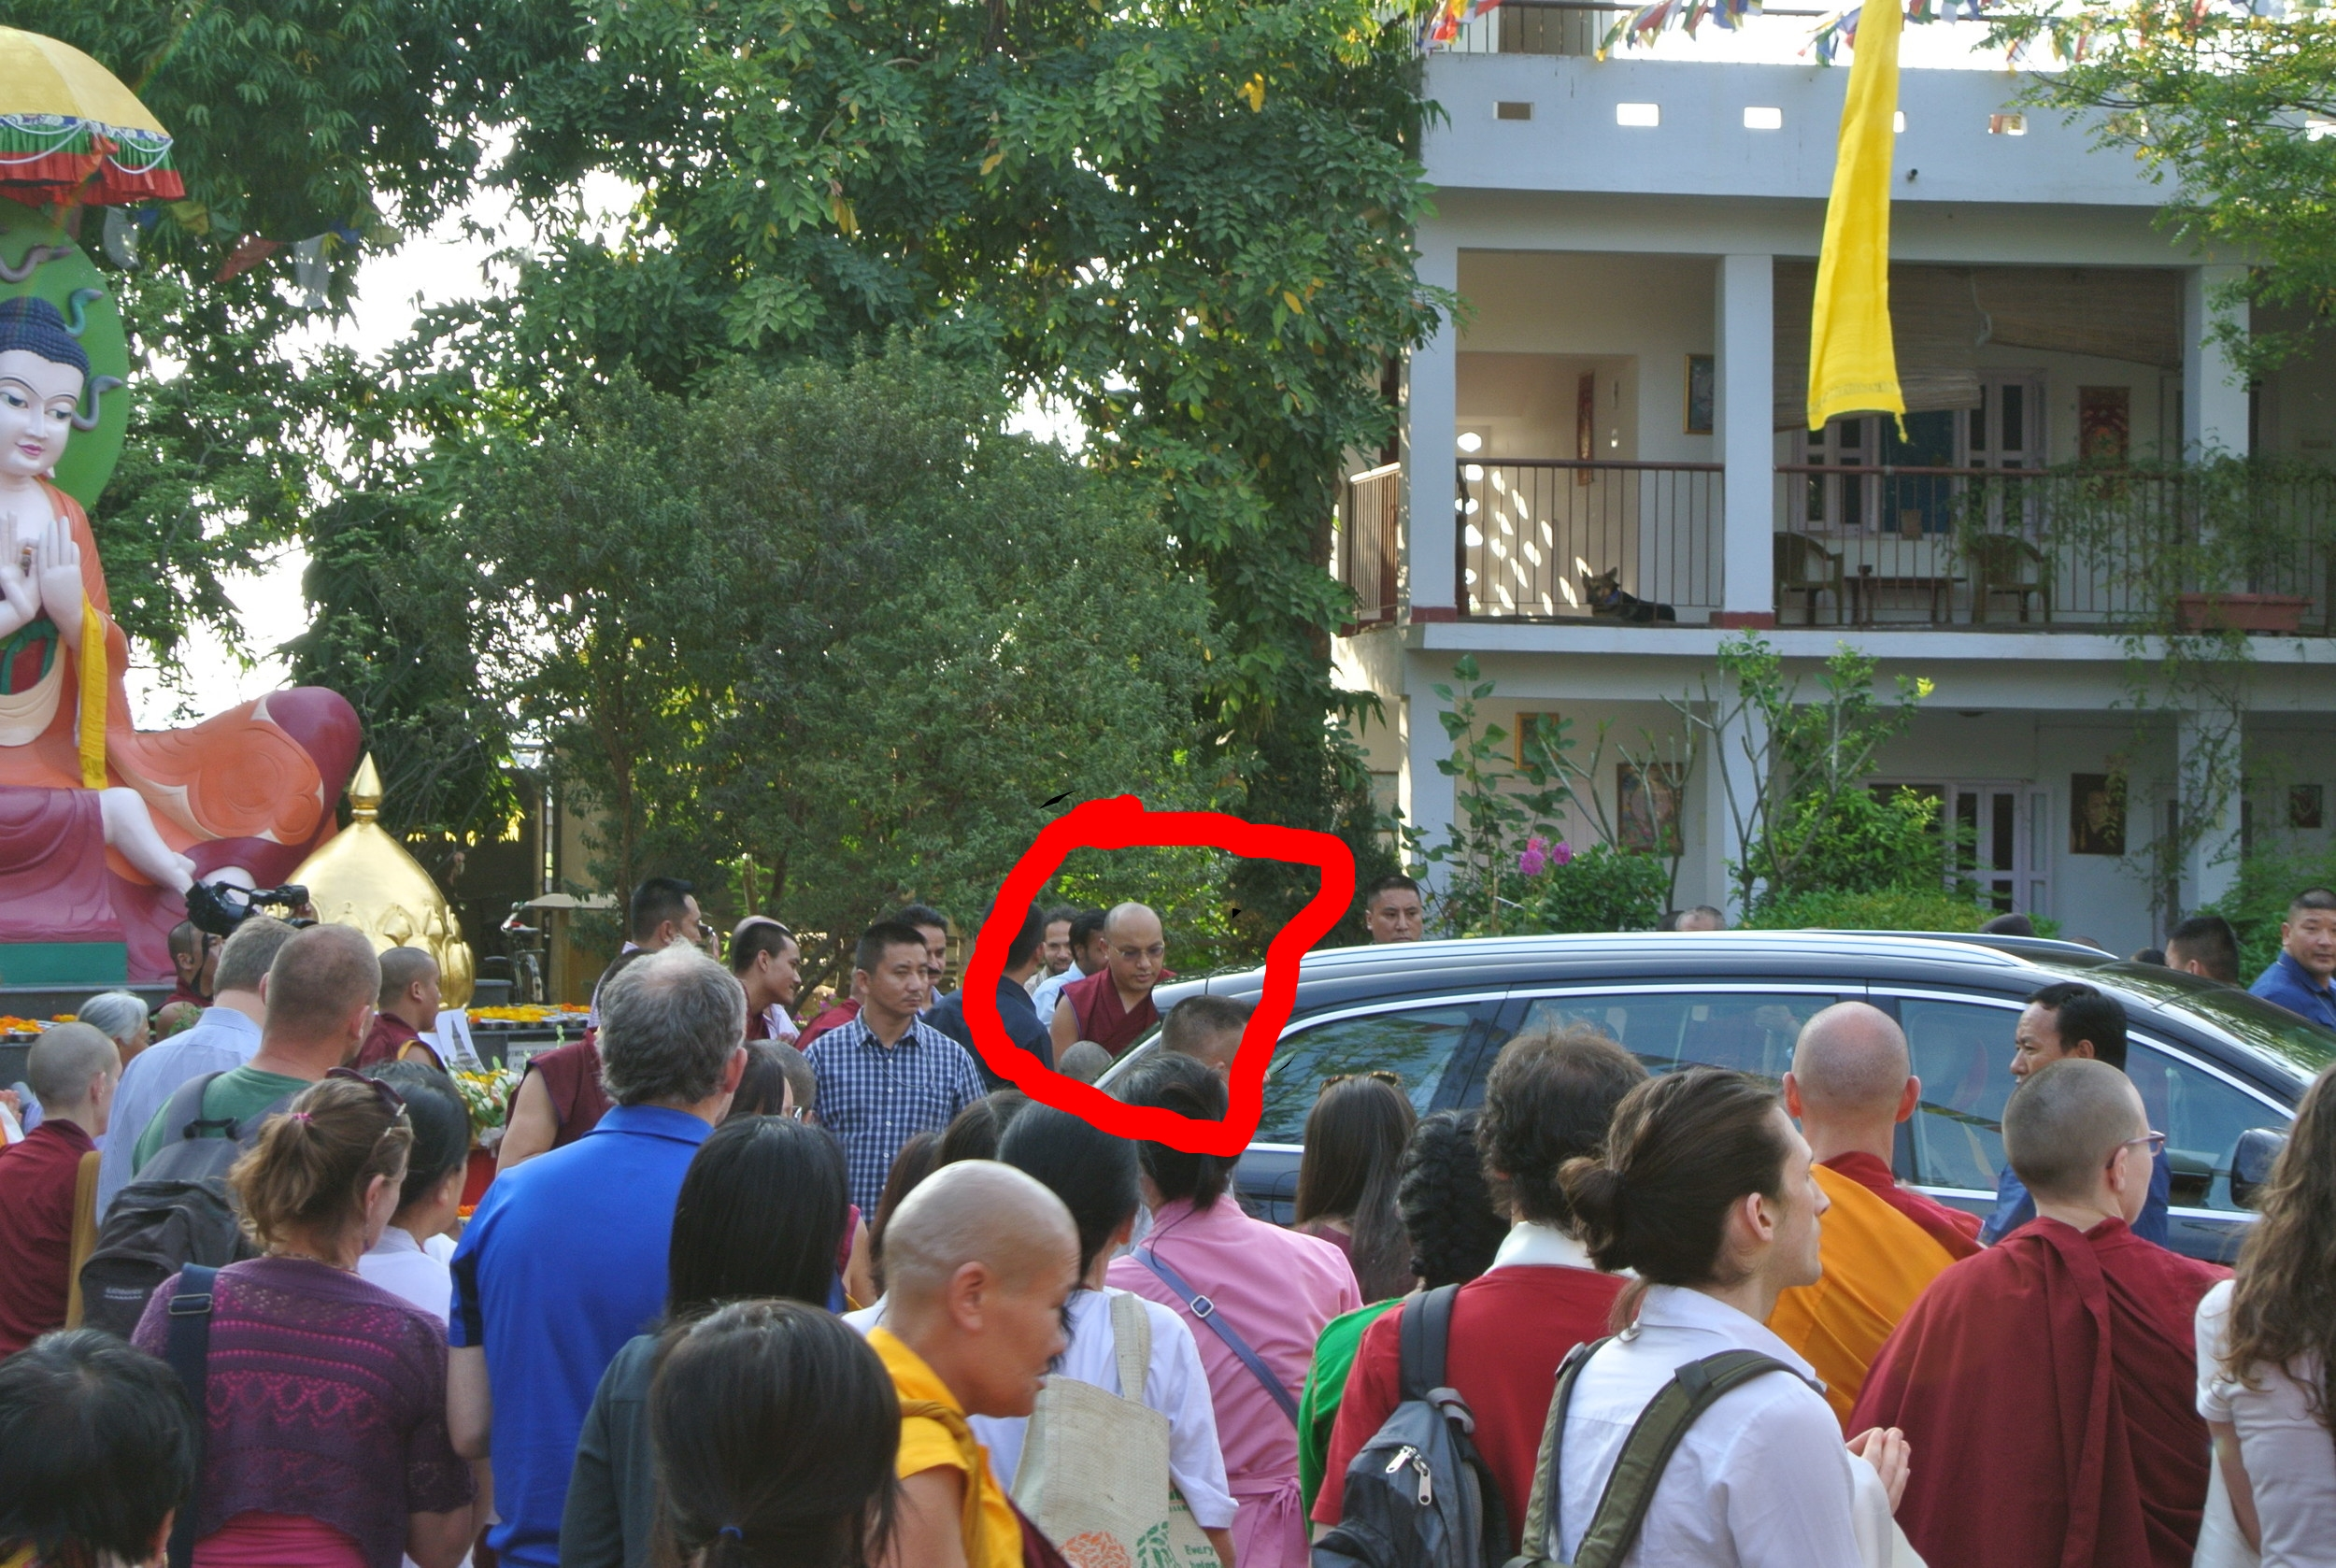 Here's the best picture I could get of the Karmapa